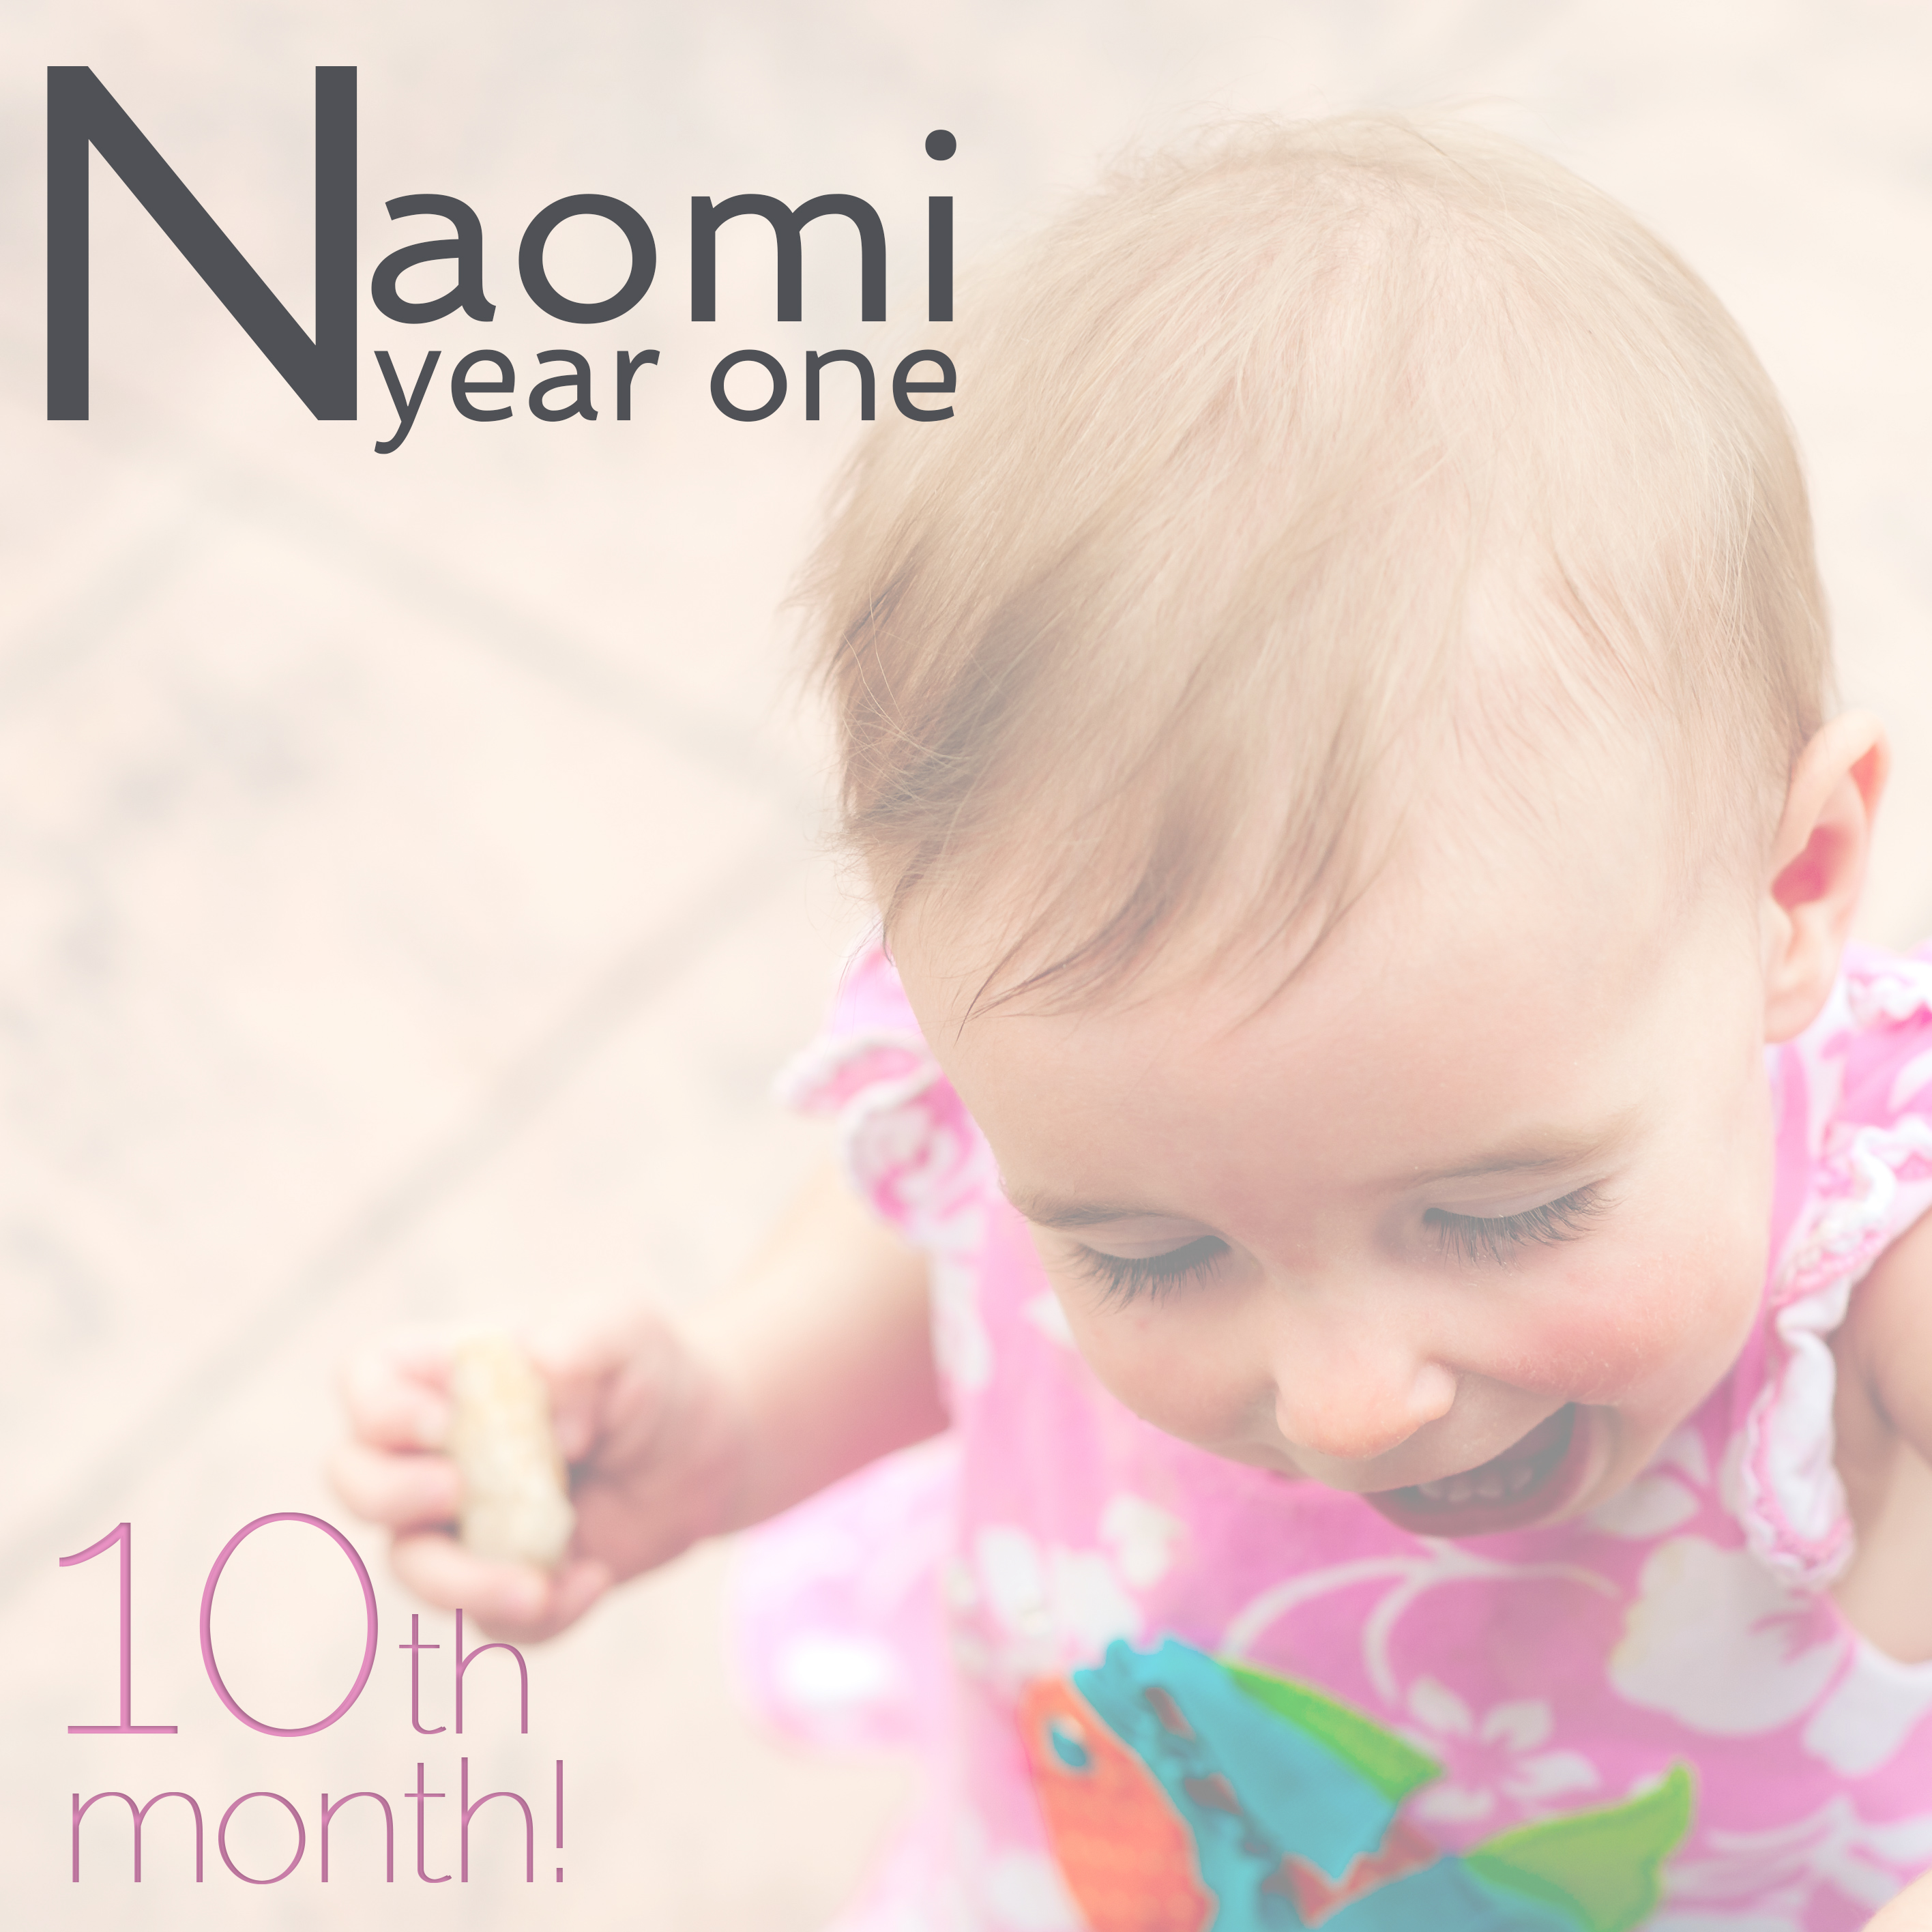 Naomi Year One: 5/6th of a Year Old